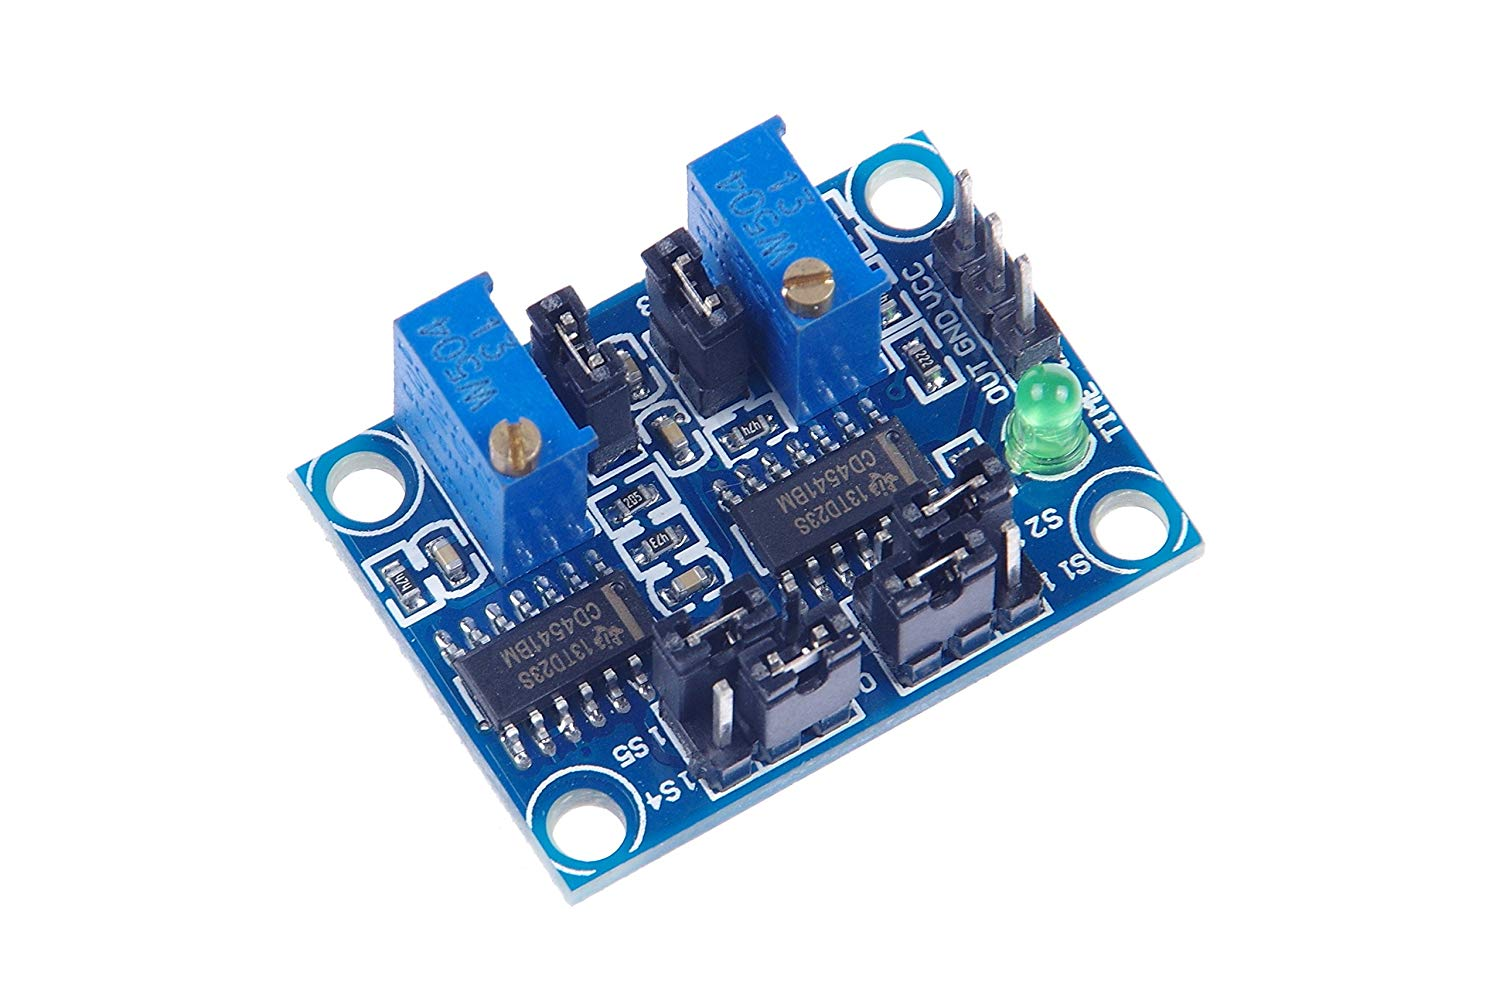 Cheap Wave Pulse Generator Find Deals On Line Simple 15v Square Get Quotations Knacro Cycle Timing Signal Module Delay Frequency Adjustable